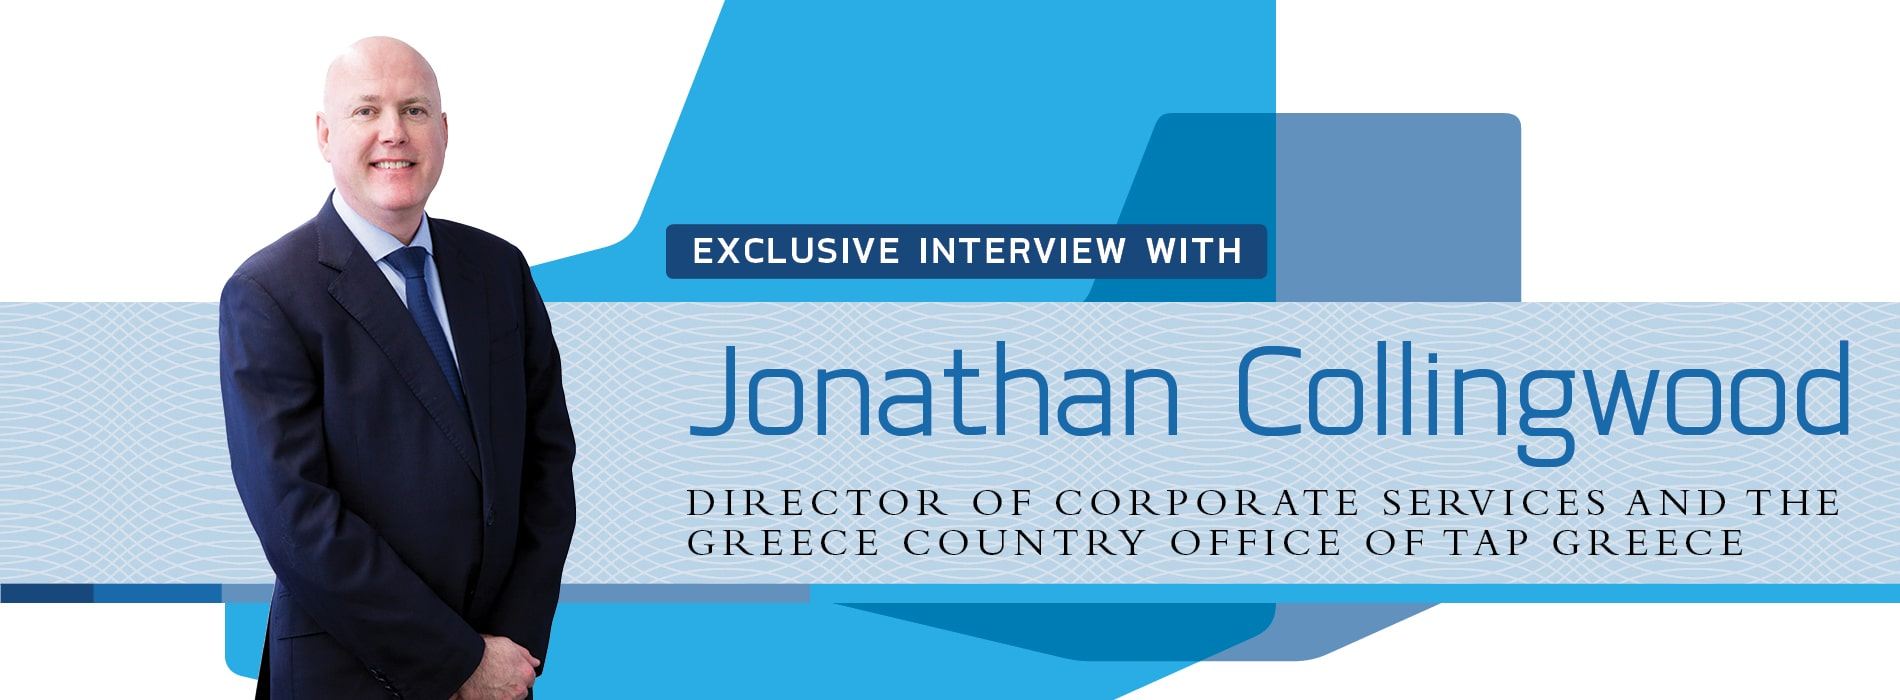 Interview with Jonathan Collingwood,Director of TAP Greece